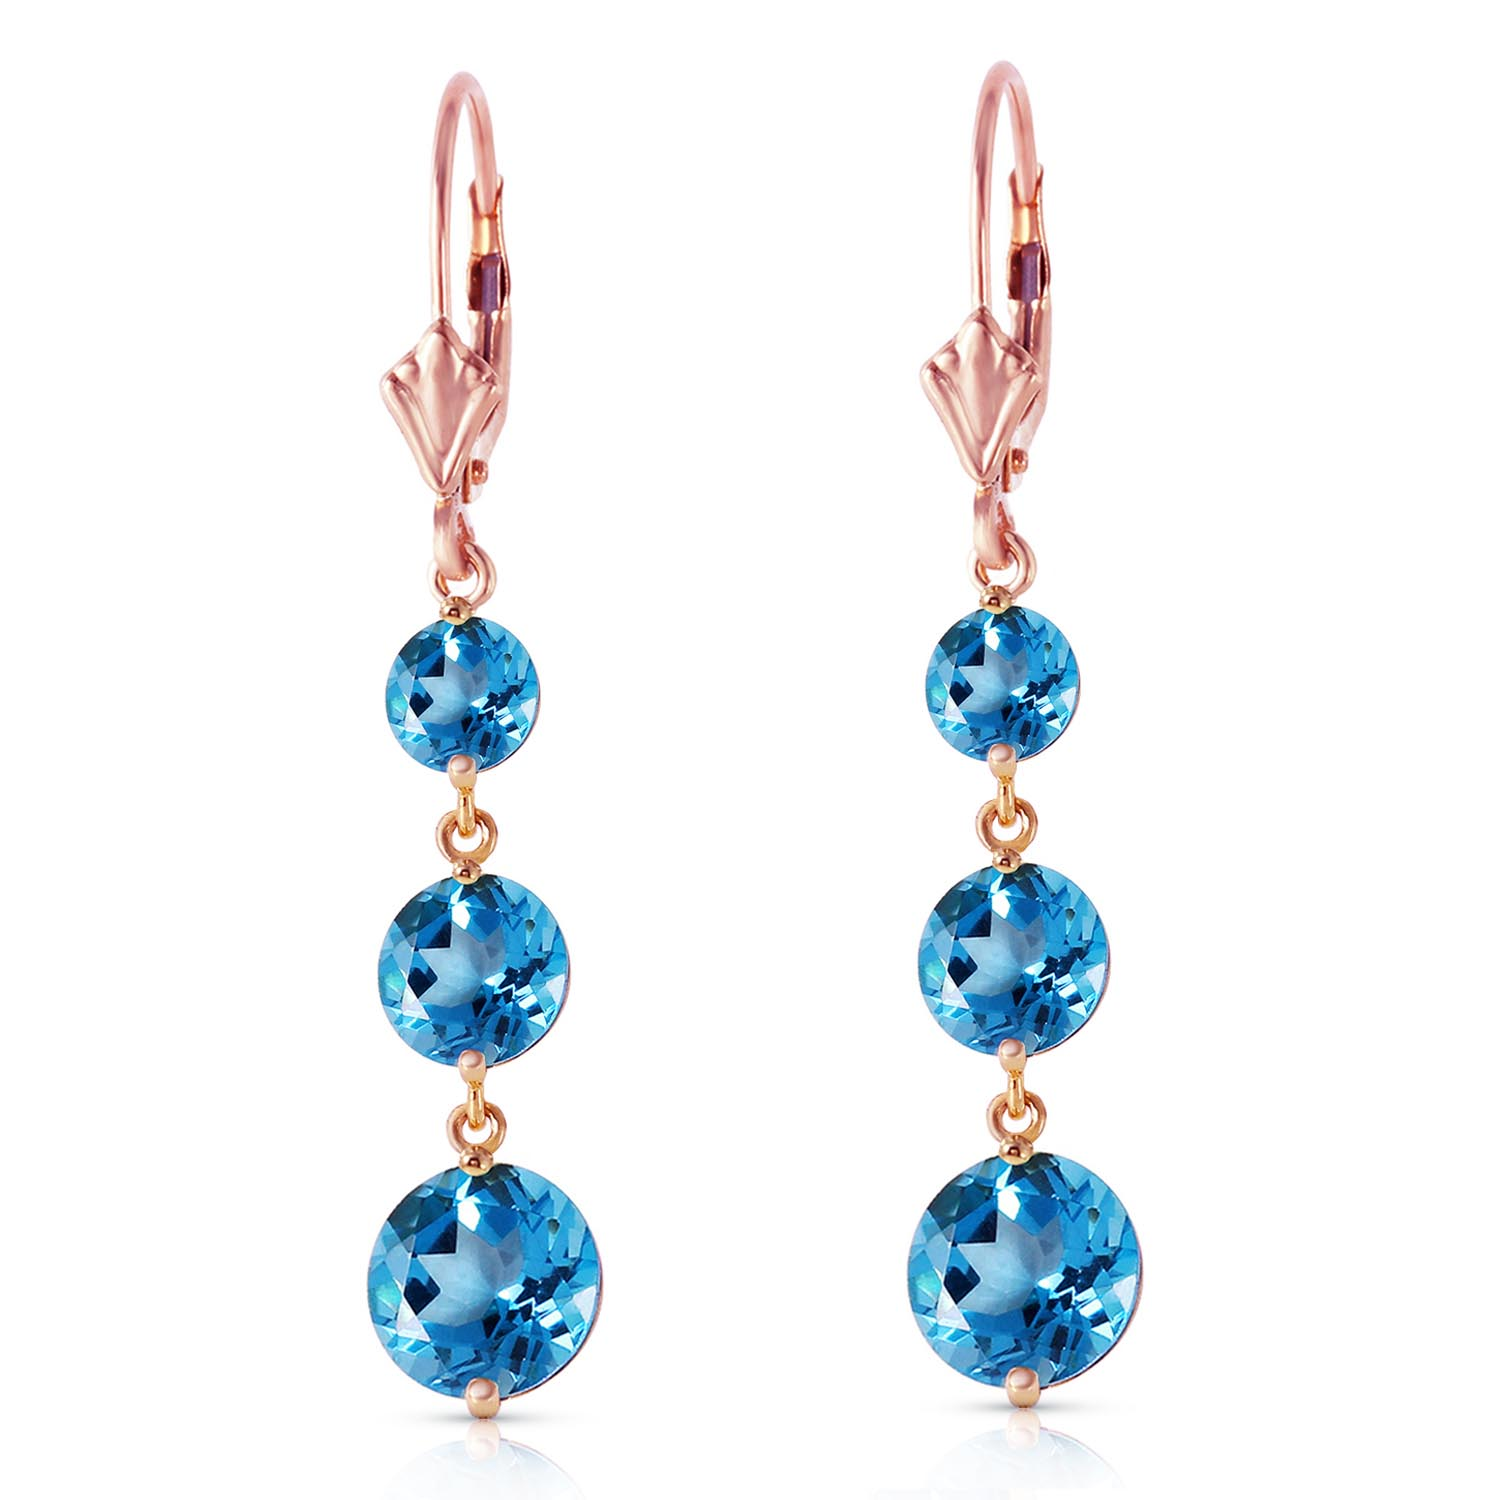 Blue Topaz Trinity Drop Earrings 7.2ctw in 14K Rose Gold